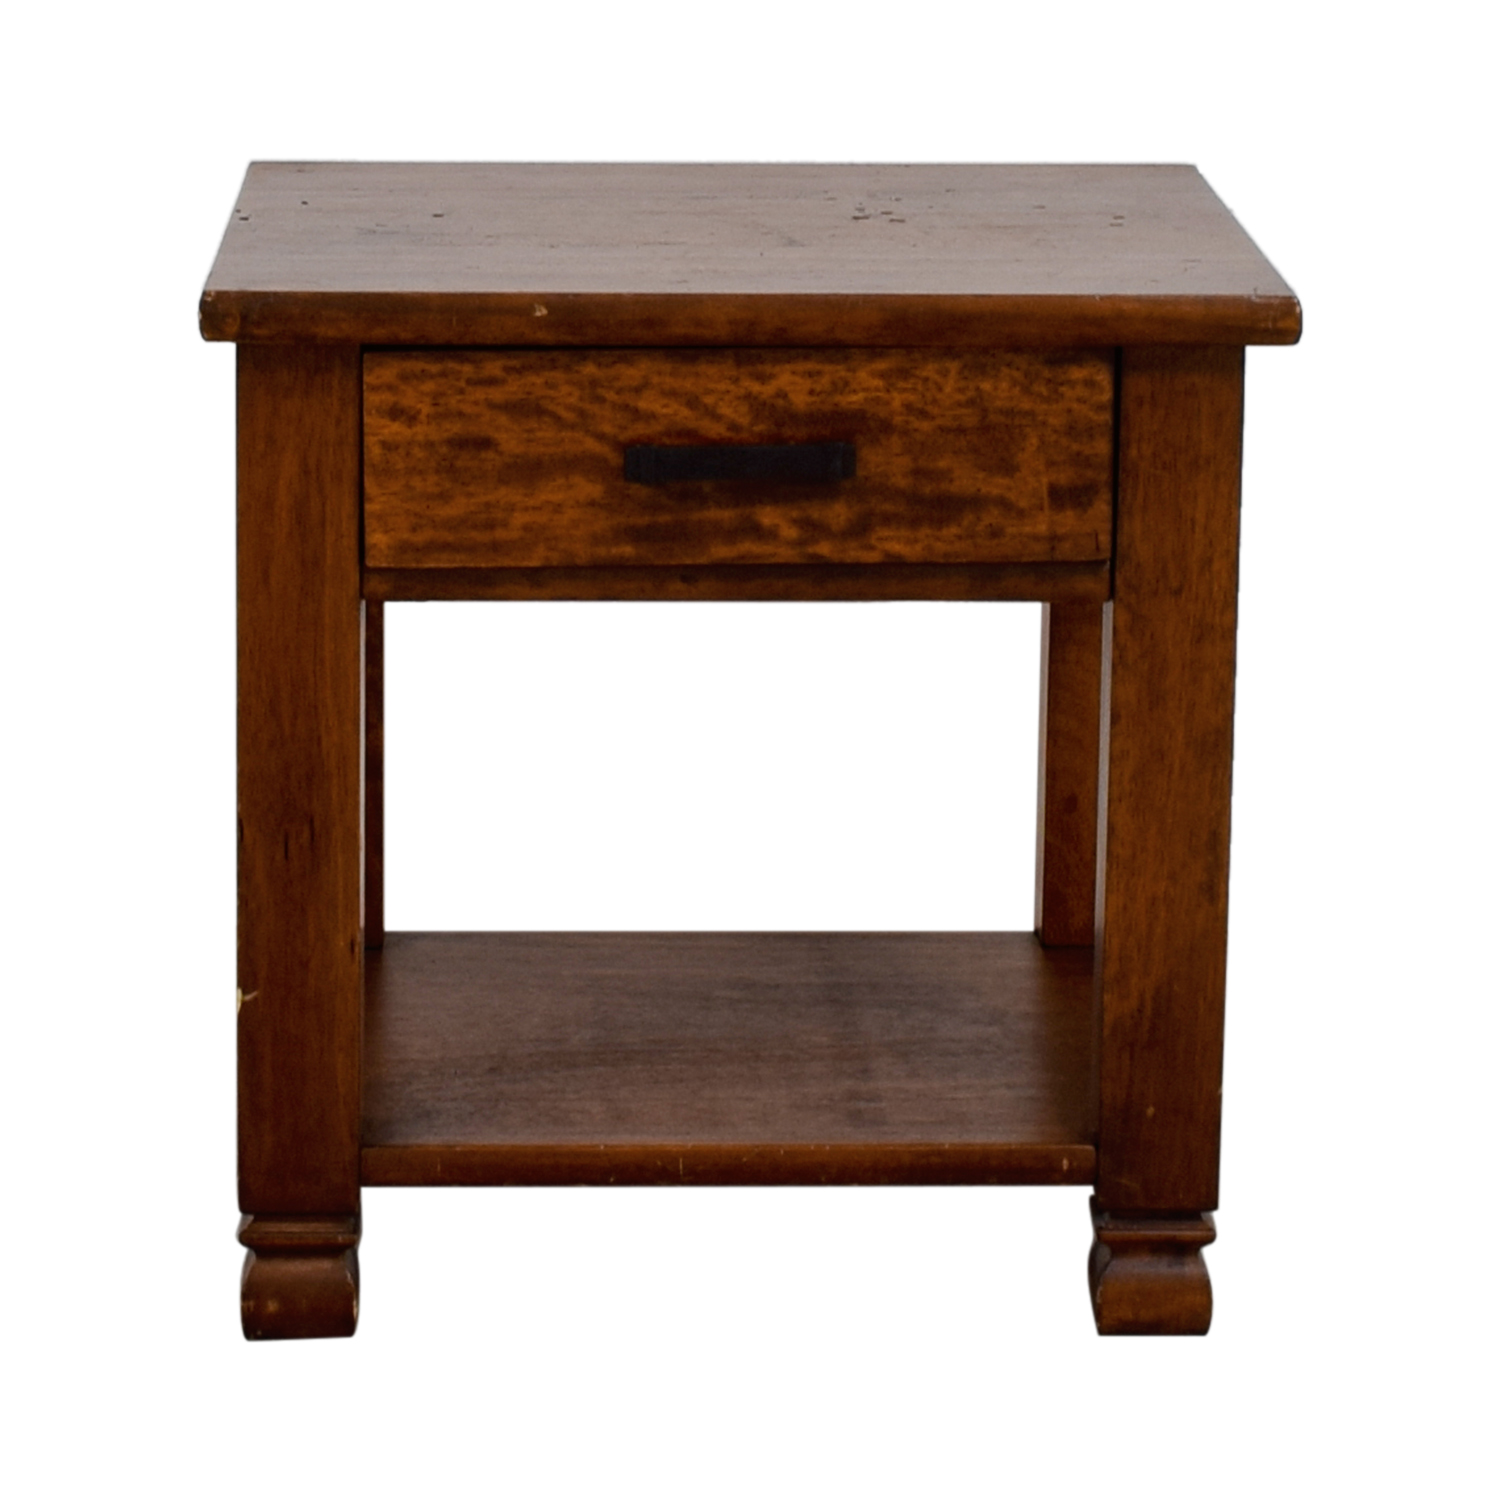 Pottery Barn Pottery Barn Single Drawer Wood End Table for sale